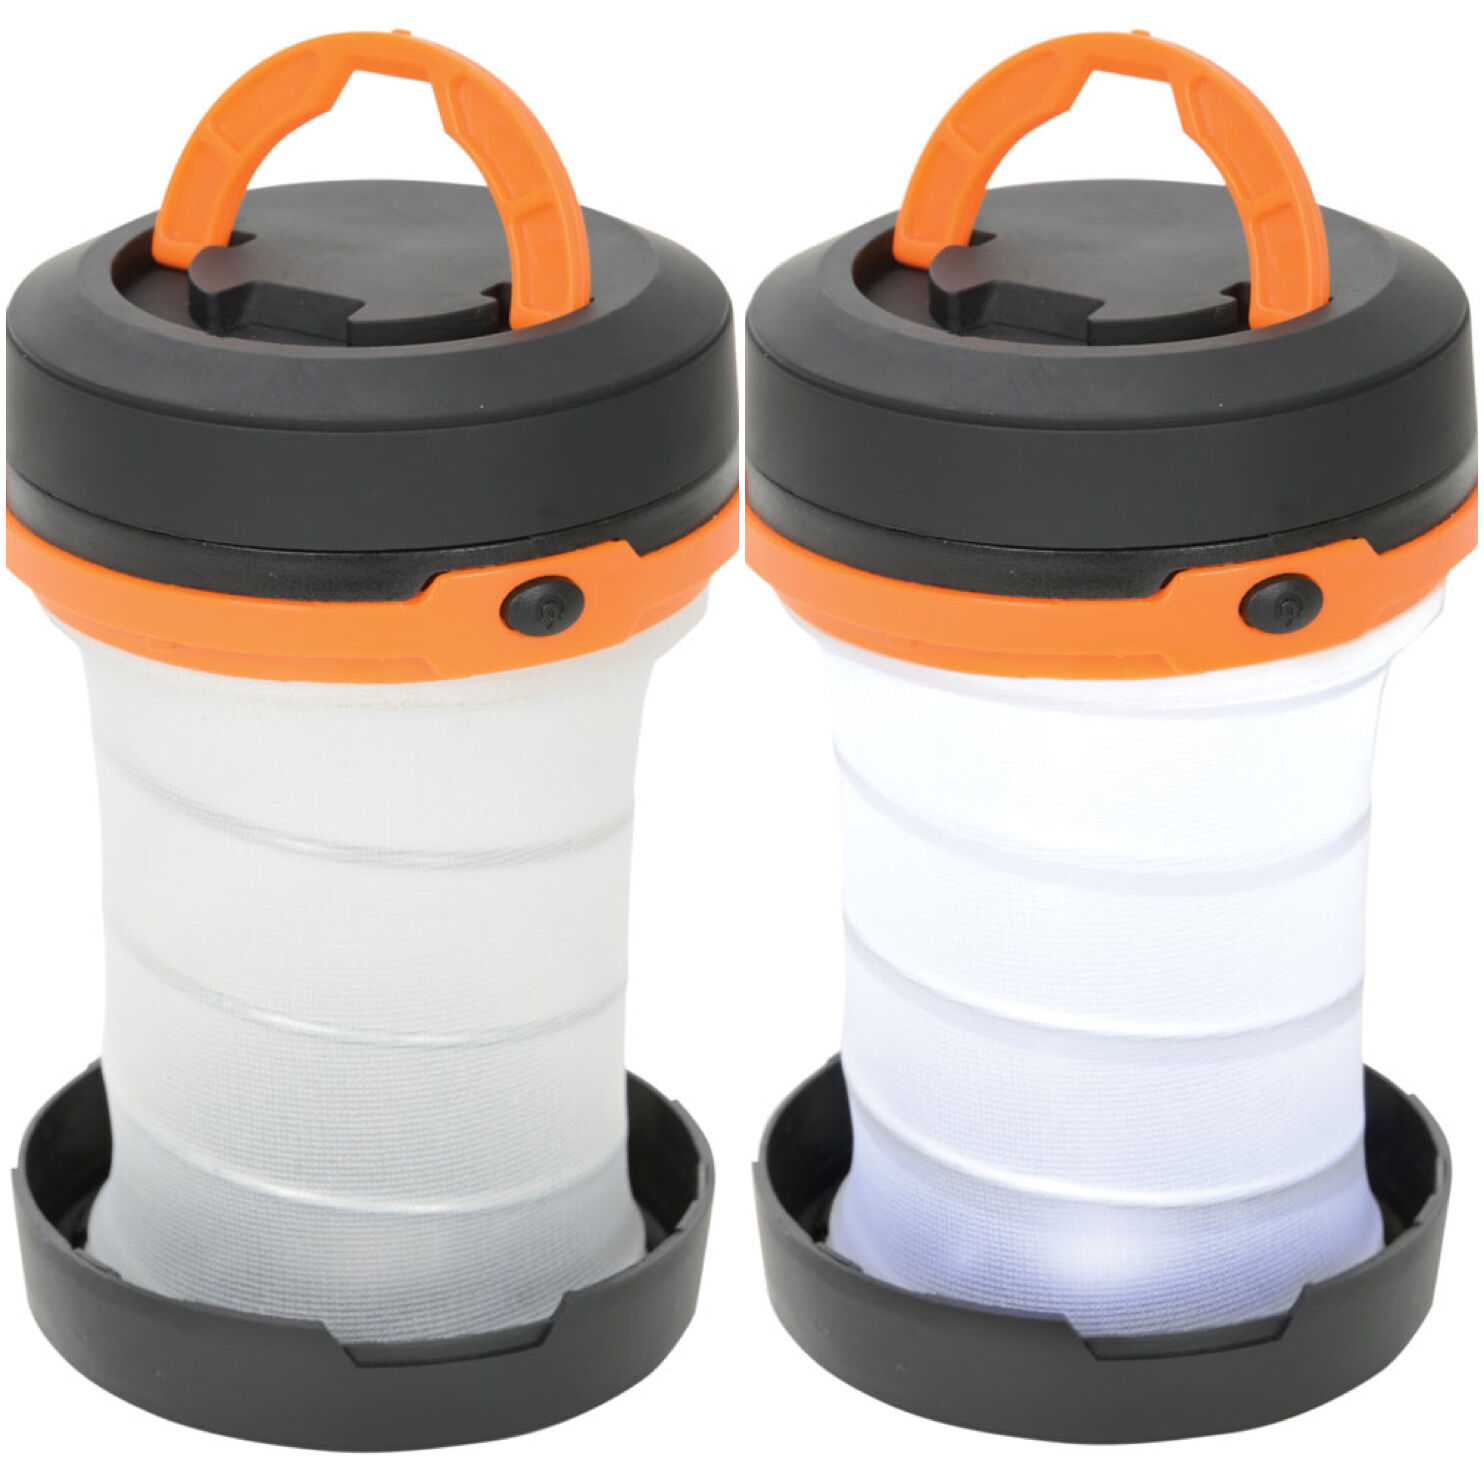 2x LYYT LED Pop Up Foldable Camping Outdoor Portable Travel Lantern & Flashlight